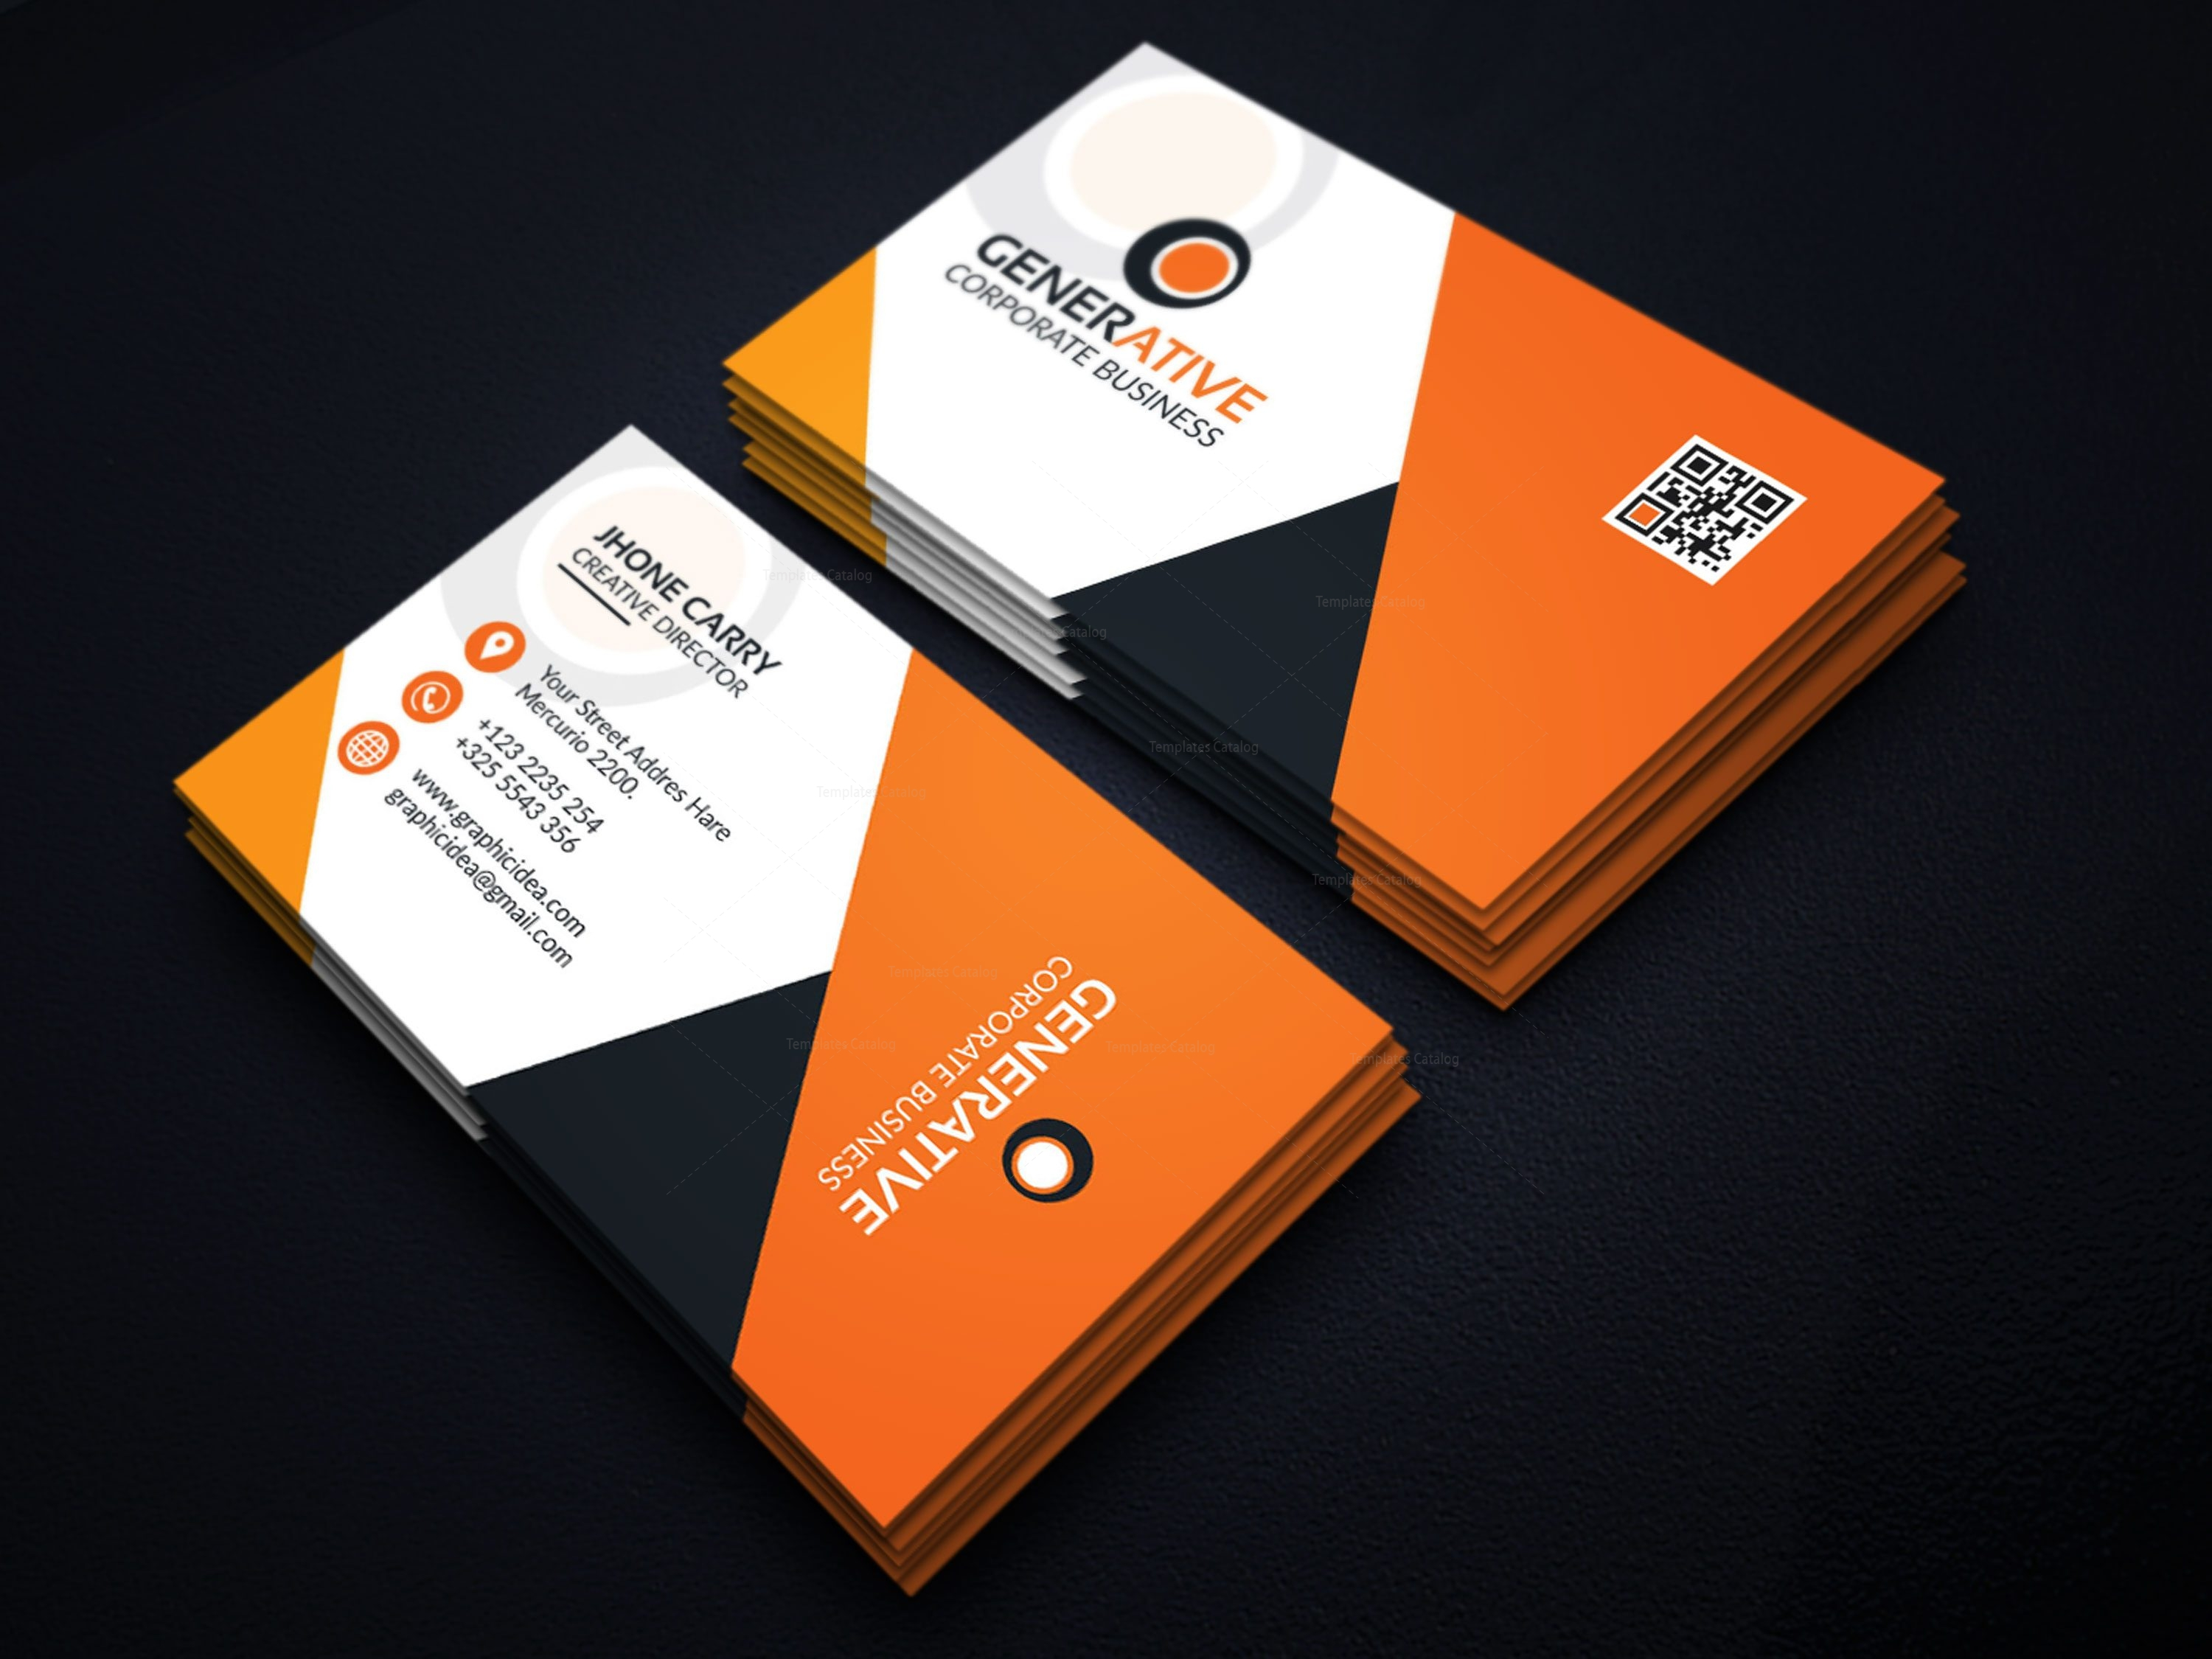 Eps sleek business card design template 001599 template catalog eps sleek business card design template 1 flashek Images